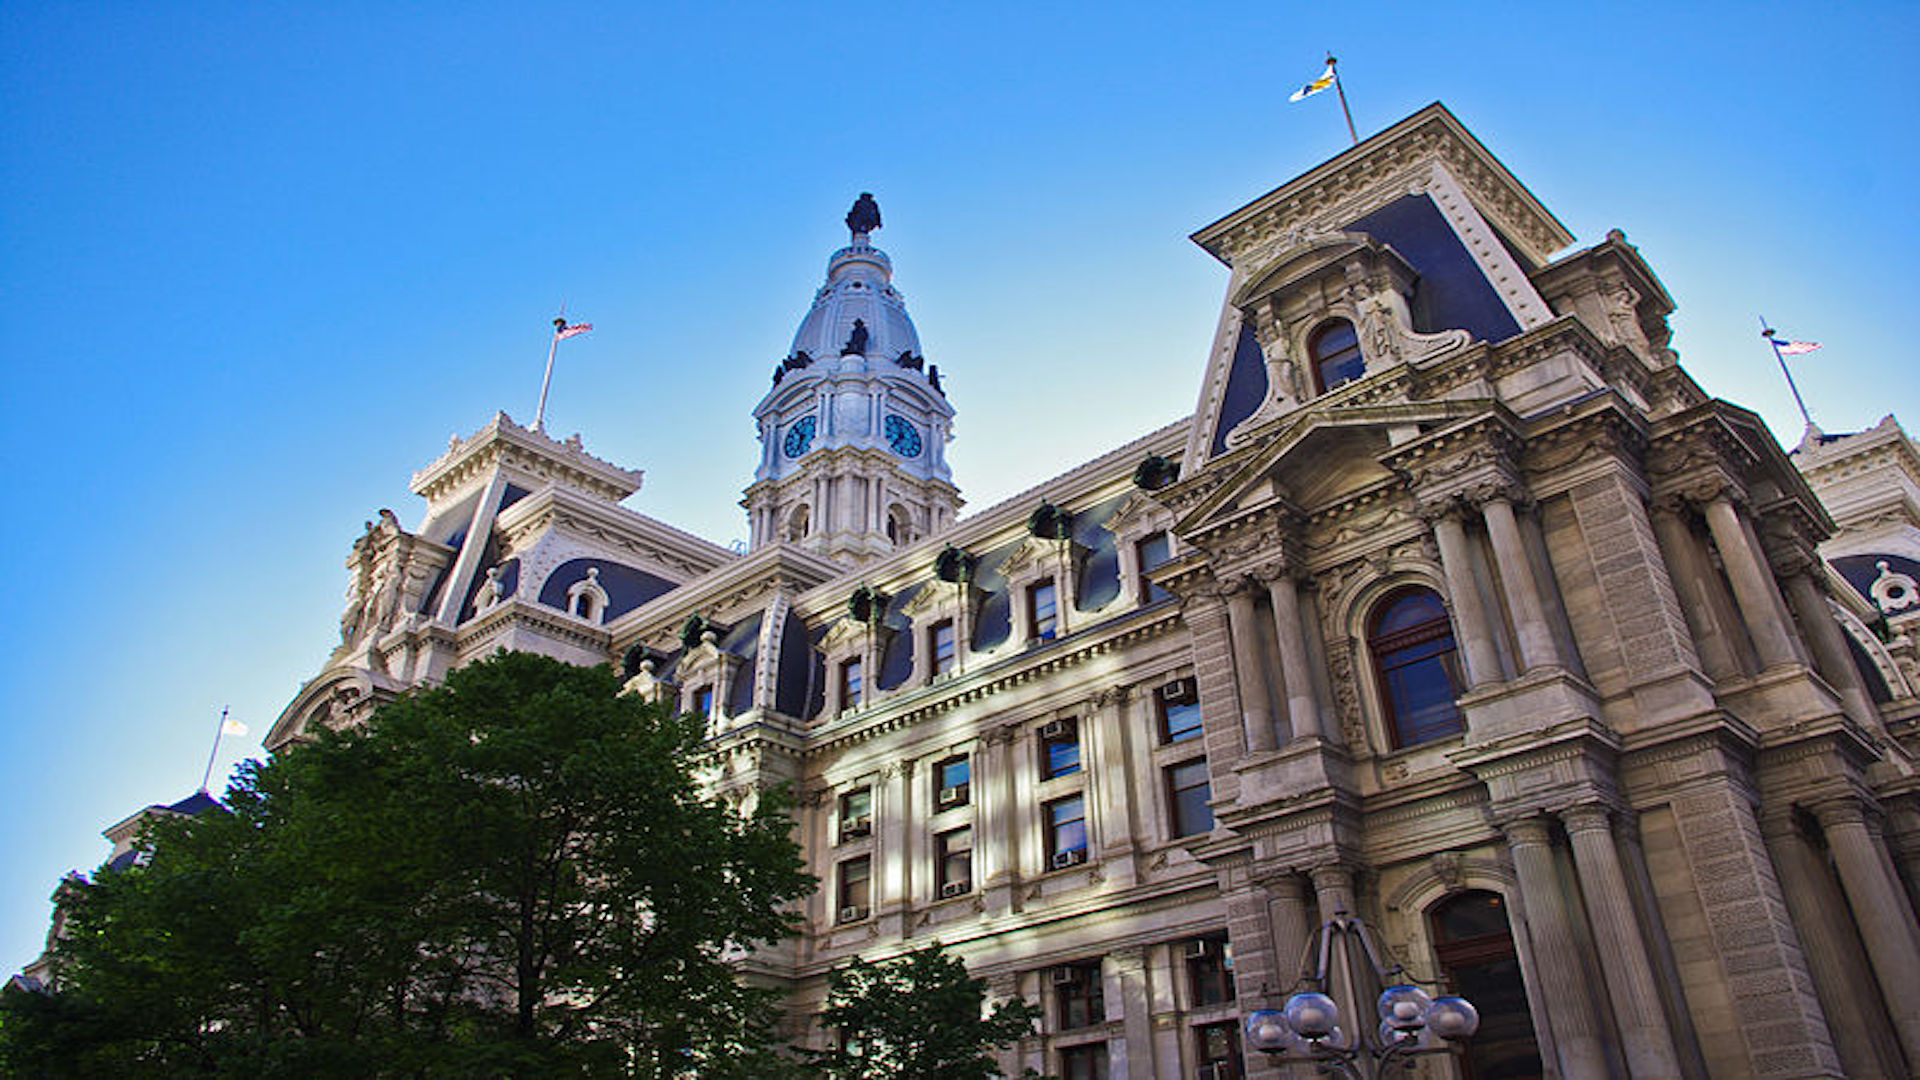 Image of Philadelphia city hall as seen from below. The sky is a deep blue.